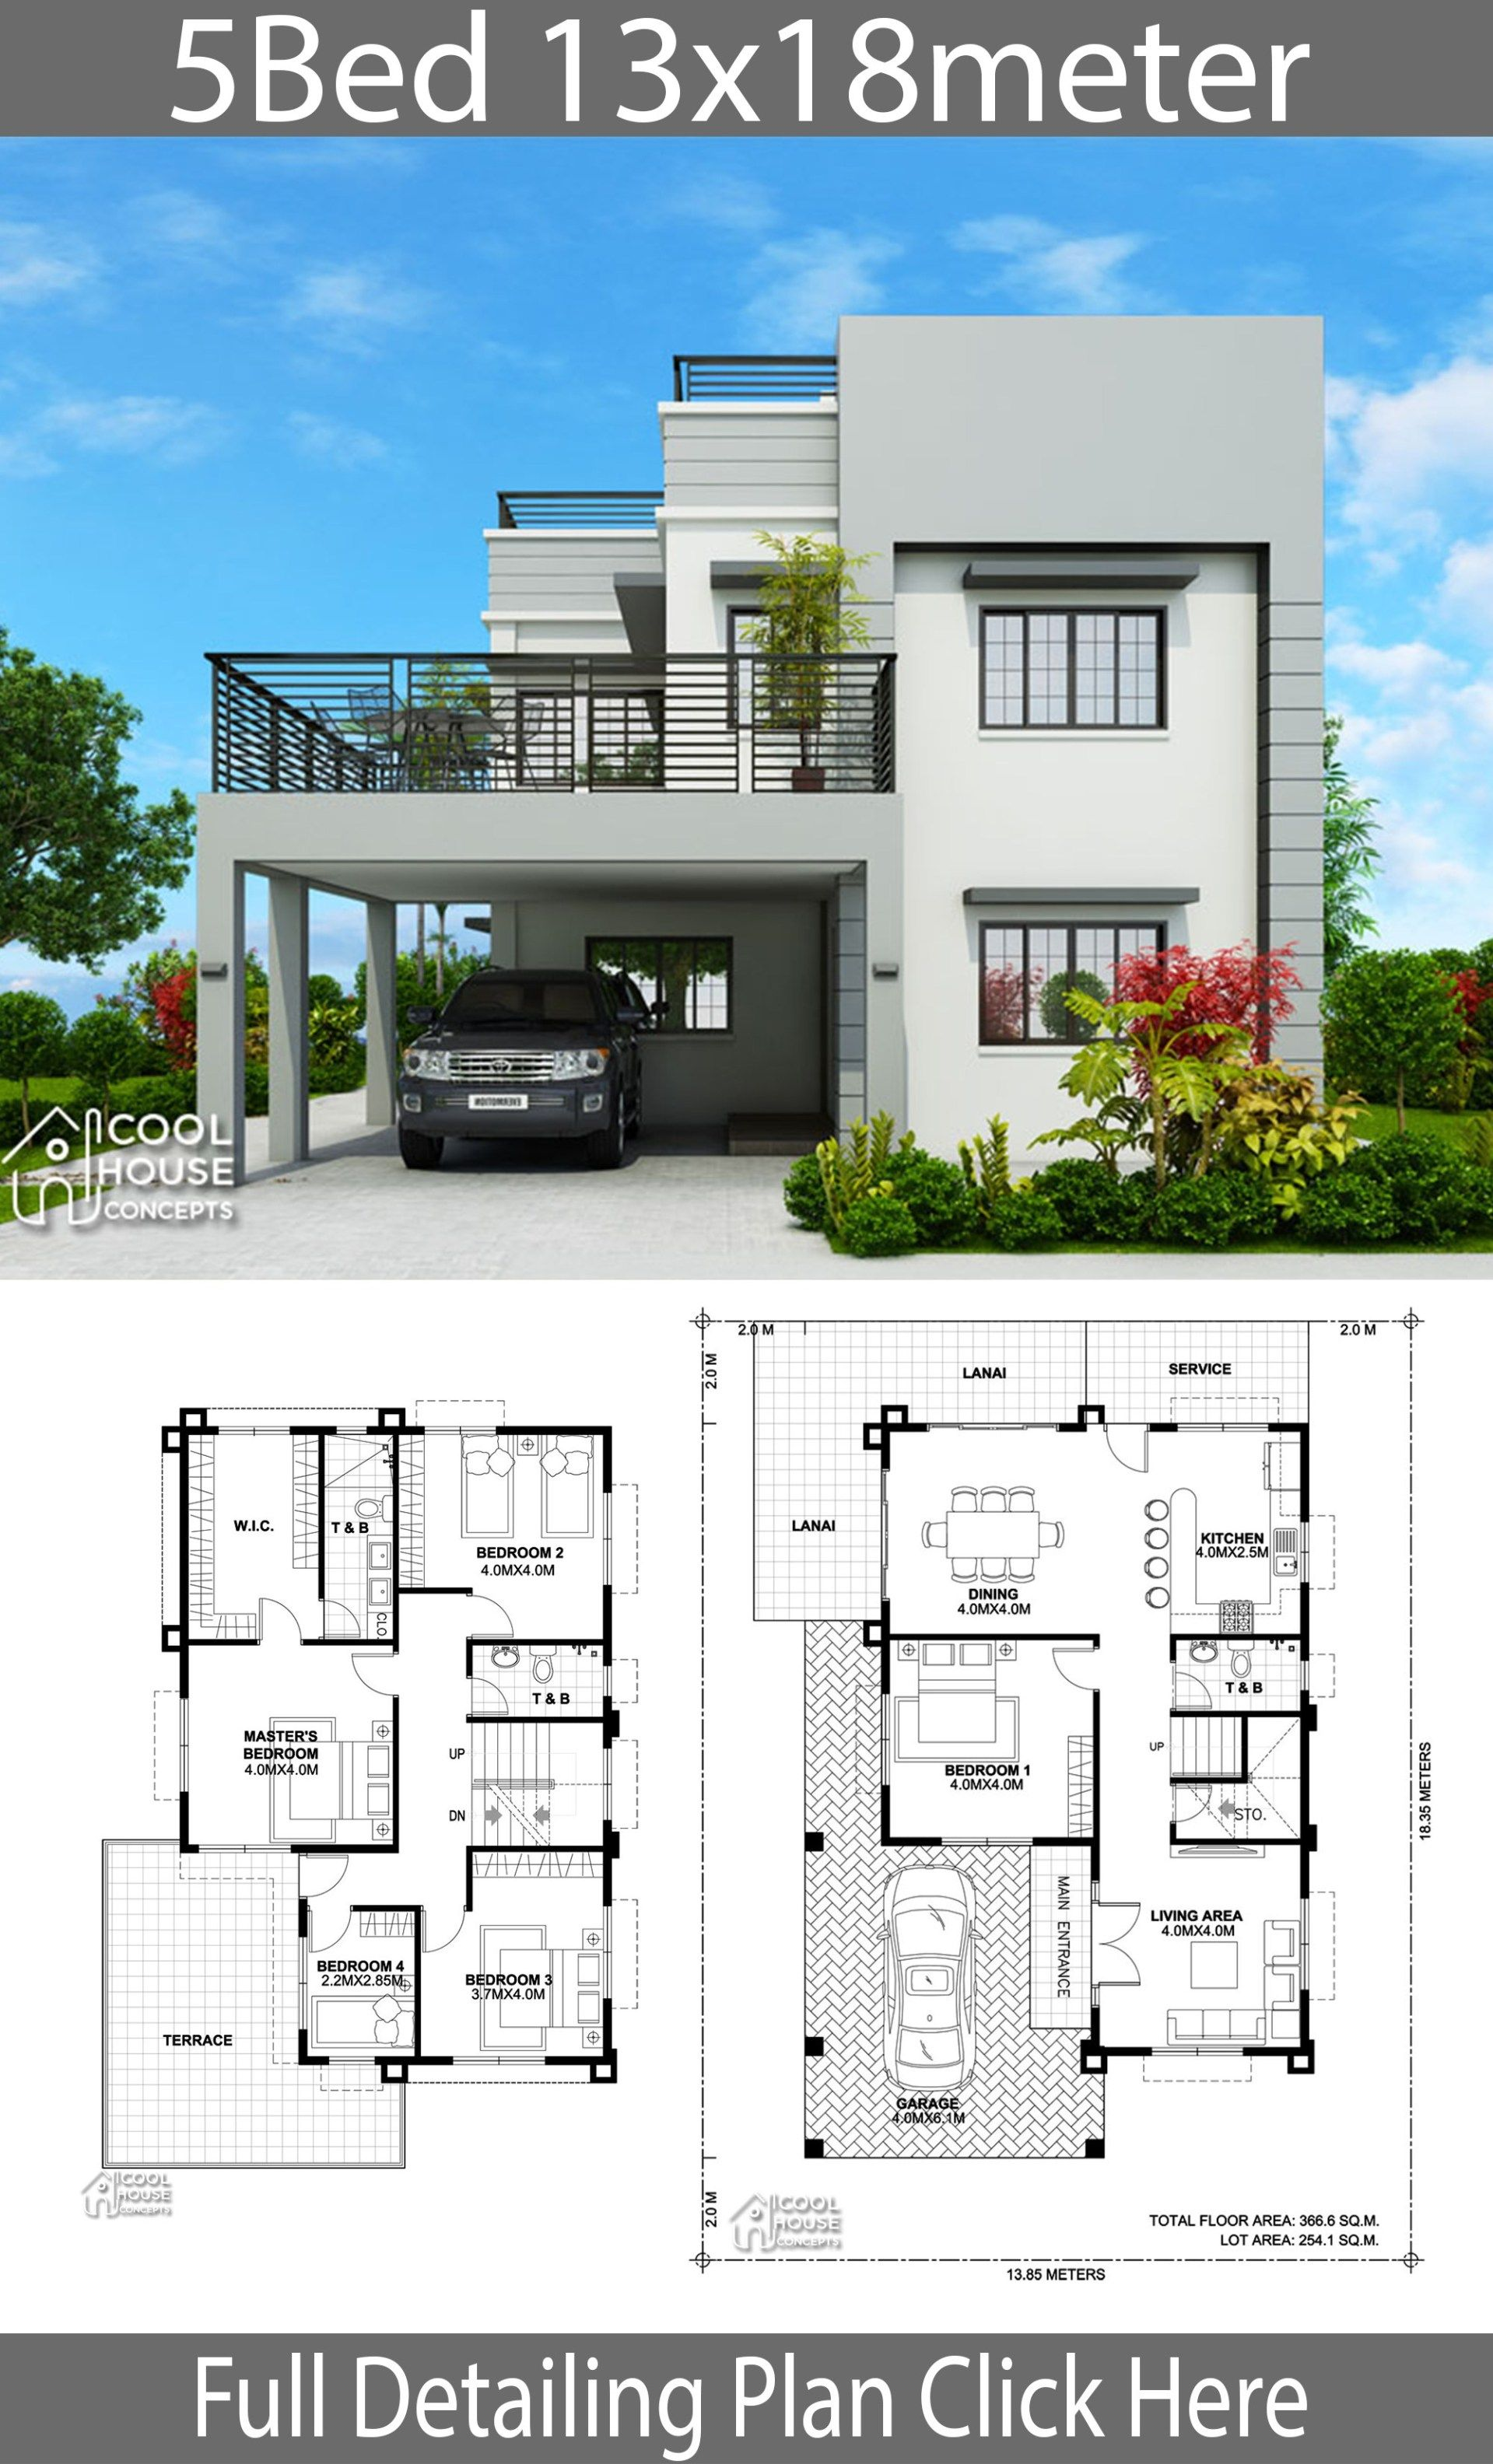 Home Design Plan 13x18m With 5 Bedrooms 2020 Modern House Floor Plans House Layout Plans Architectural House Plans